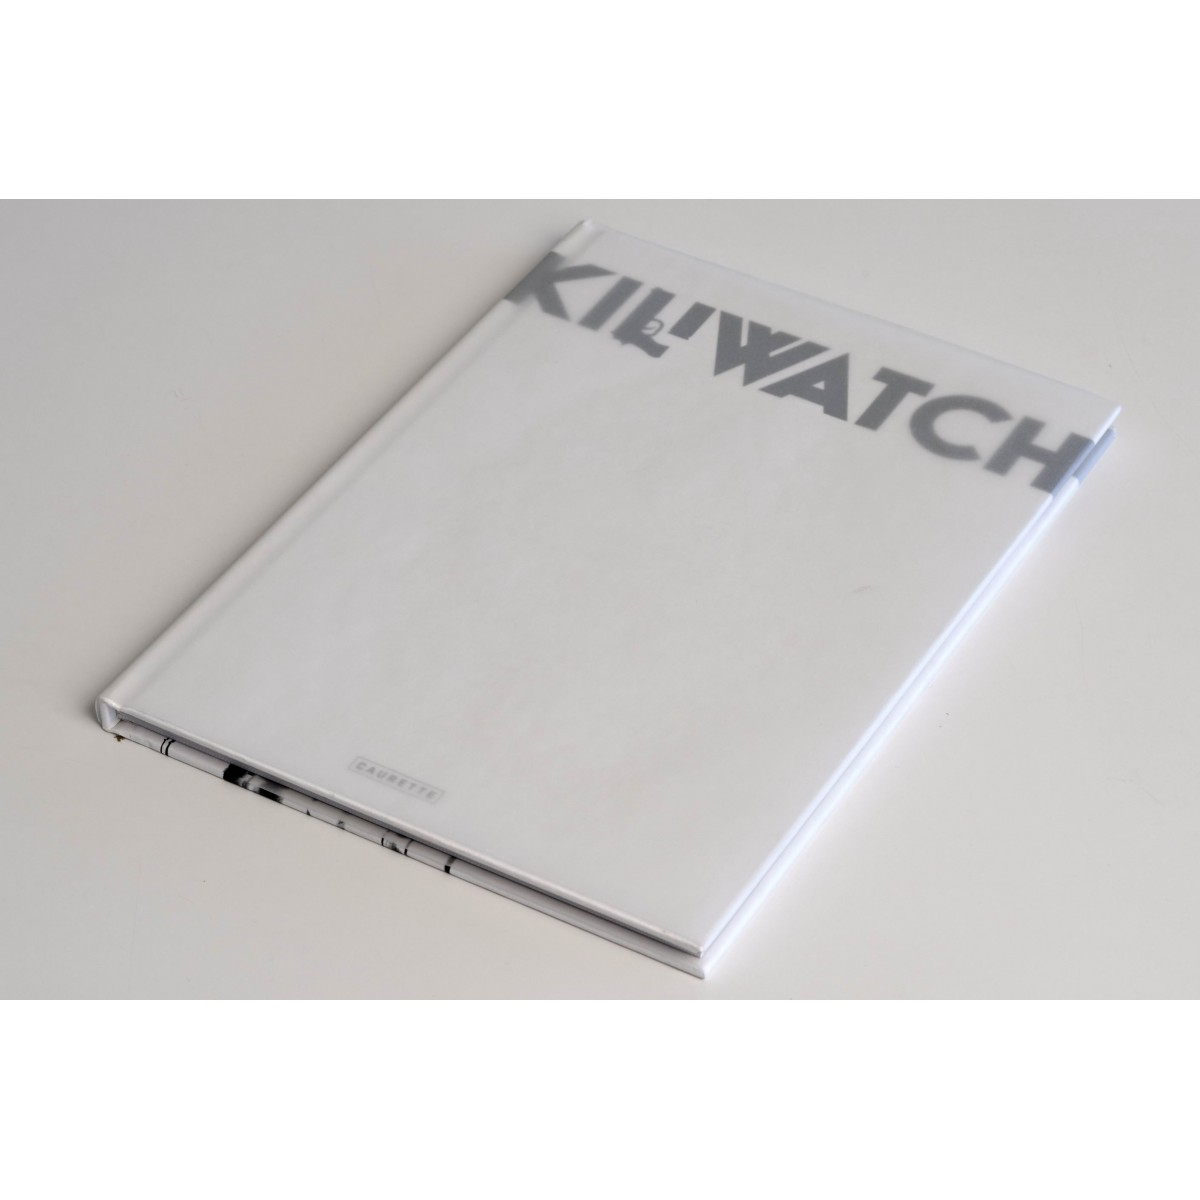 "KILIWATCH Collector - couverture originale ""Blank Cover"""